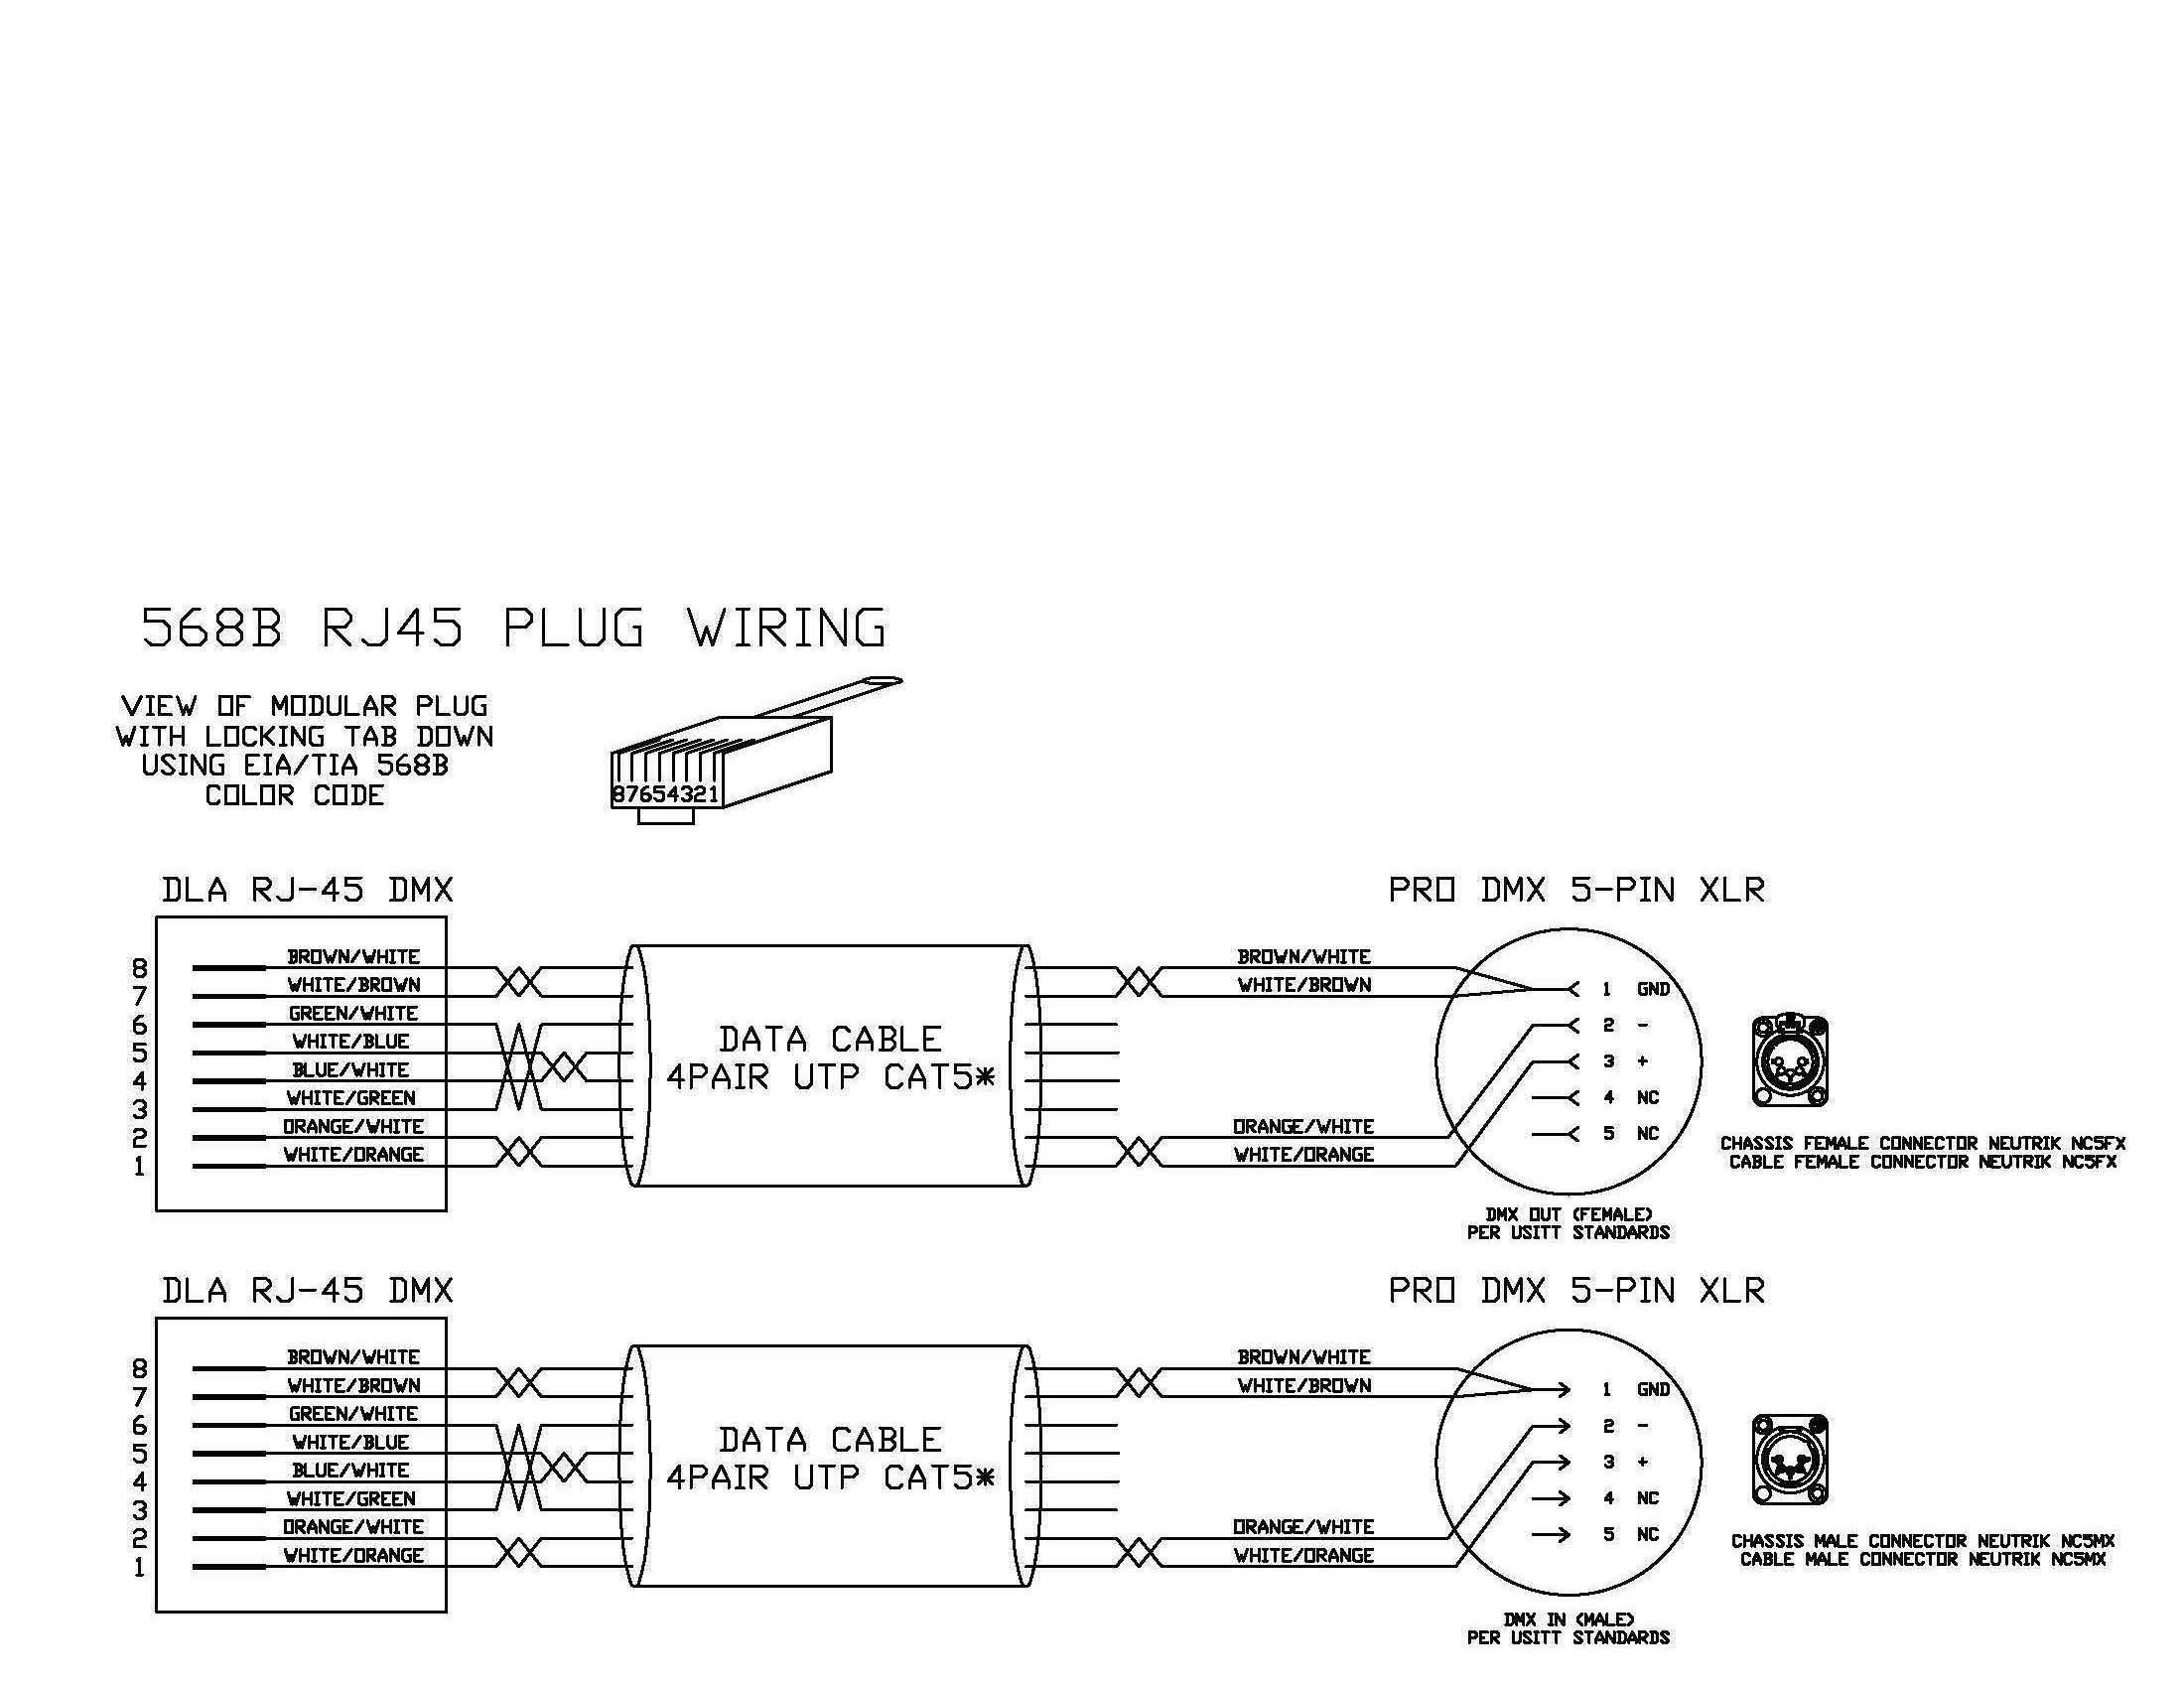 xlr to rj45 wiring diagram  xlr  electrical wiring diagrams en 2019